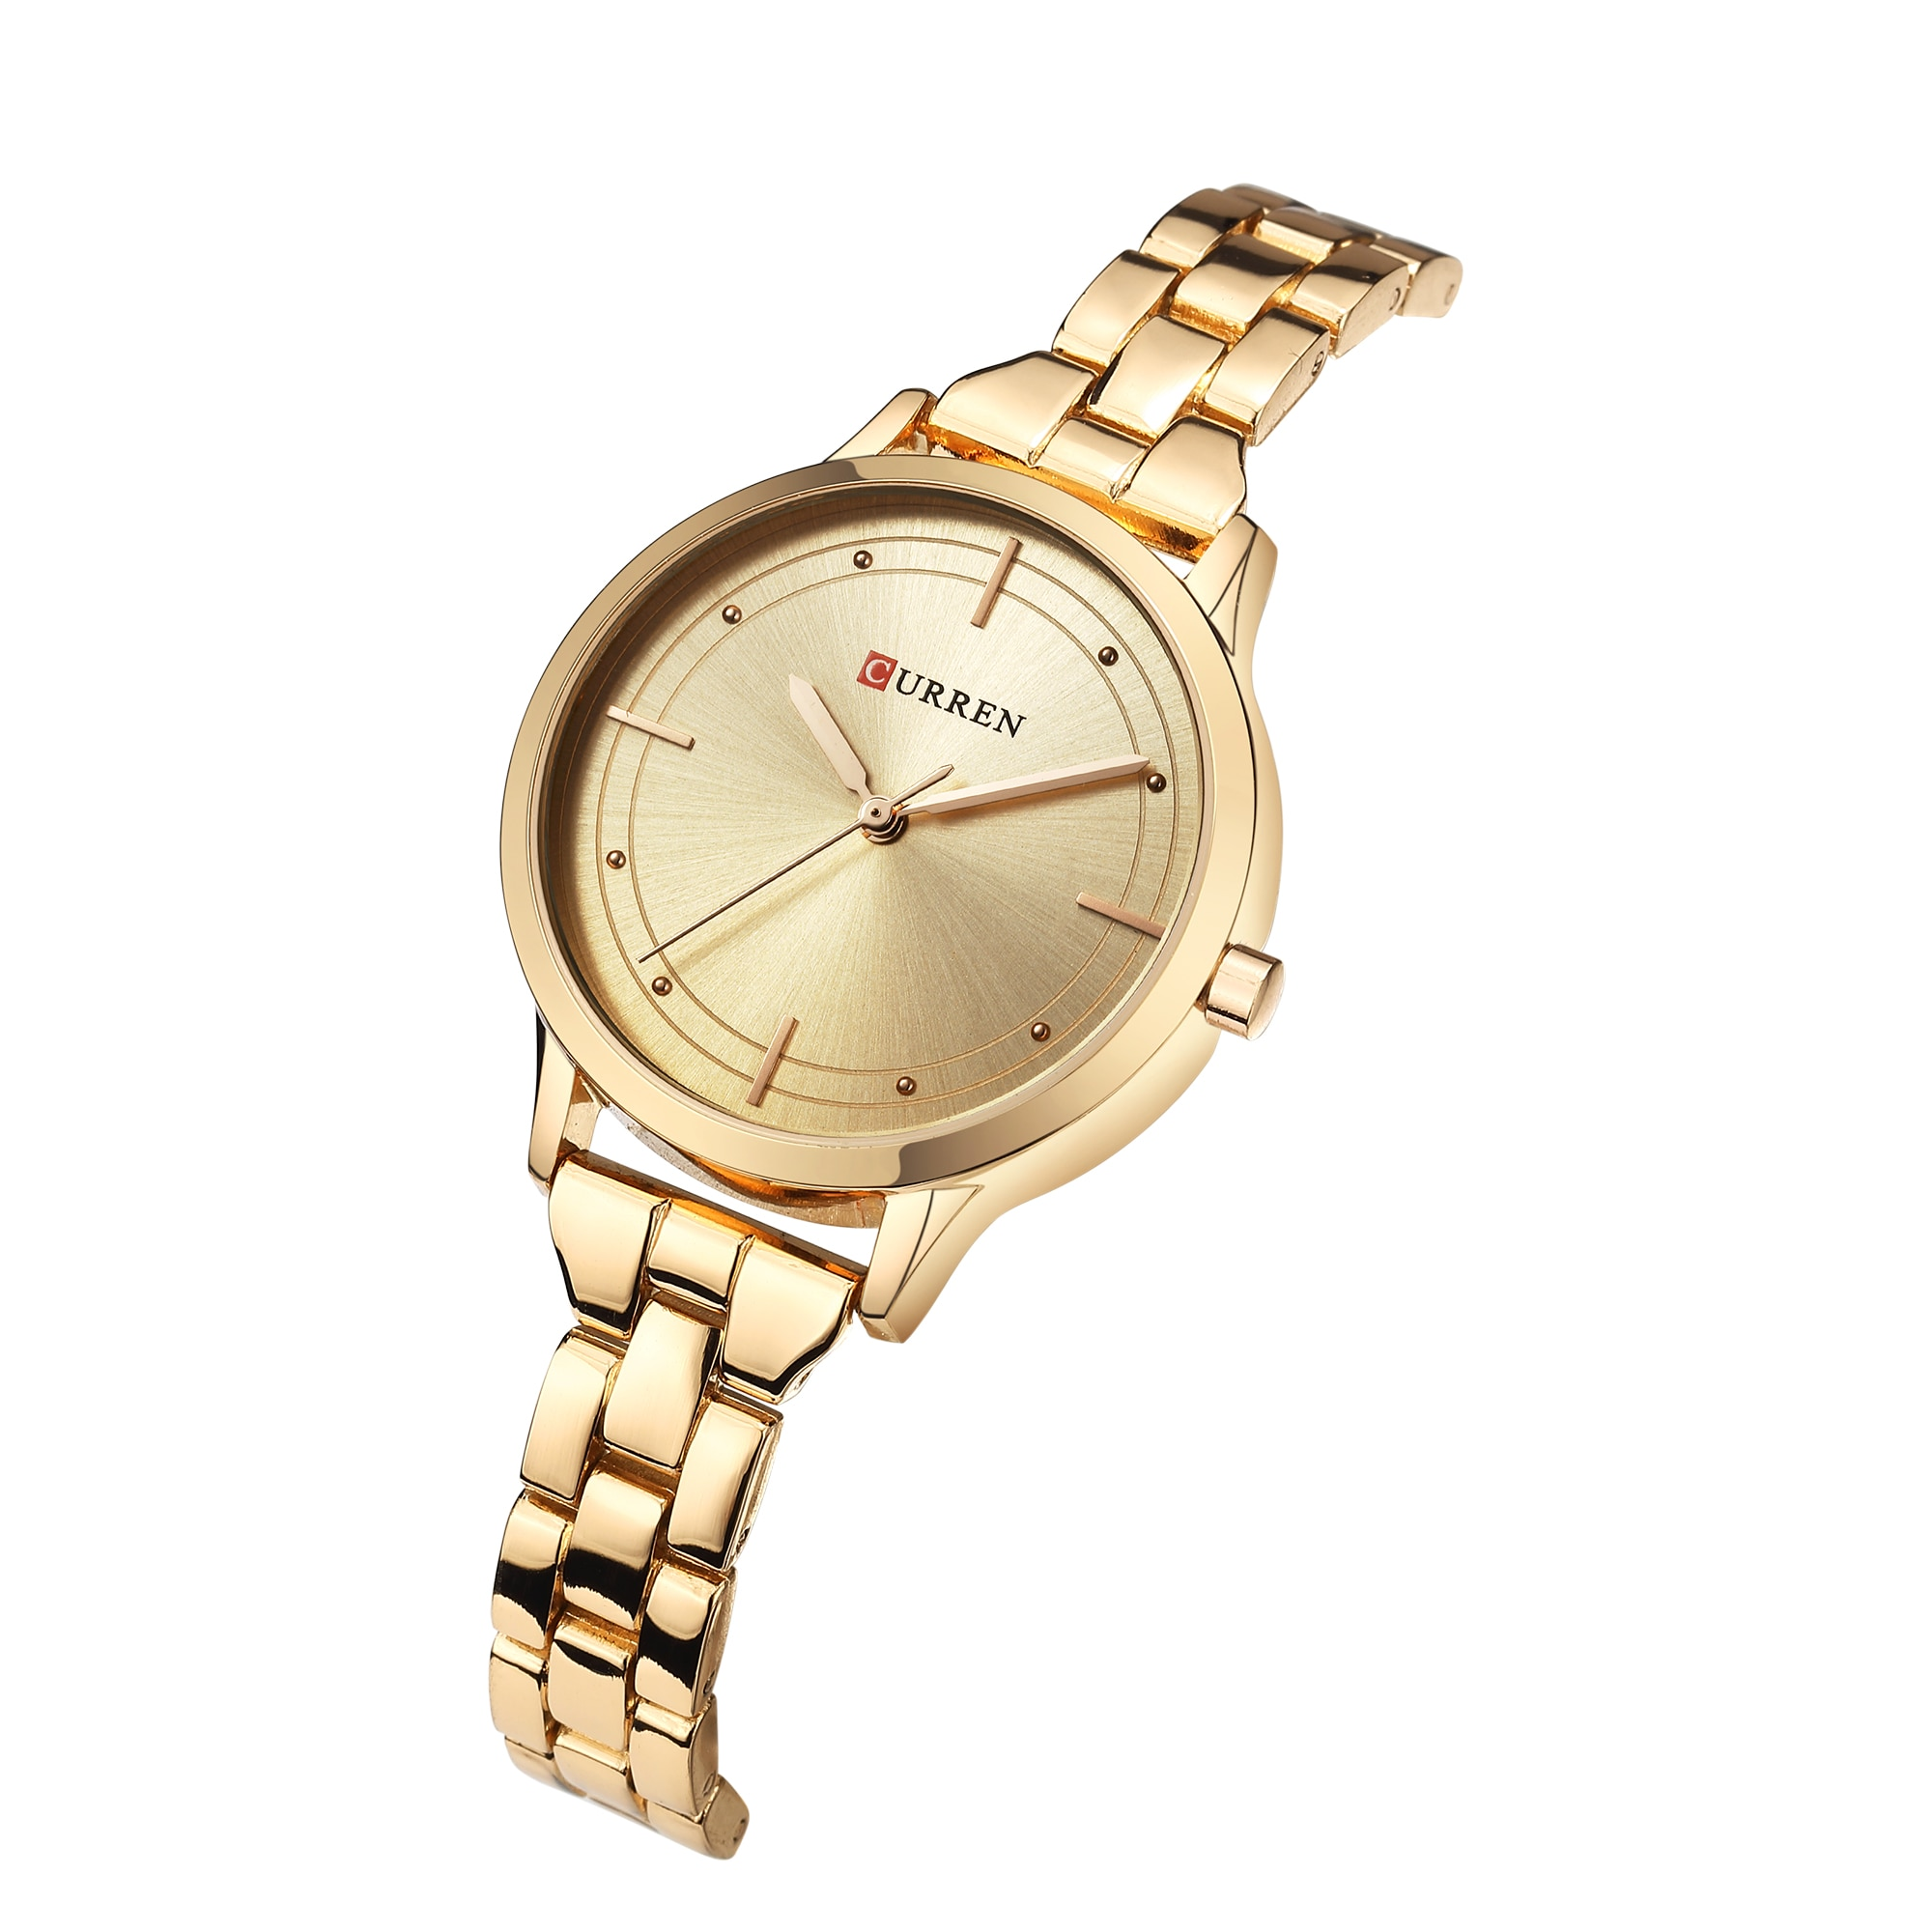 CURREN Women Watches High Quality Casual Wristwatch Gift for Female Reloj Mujer Water Resistant Stainless Steel Quartz Watches enlarge